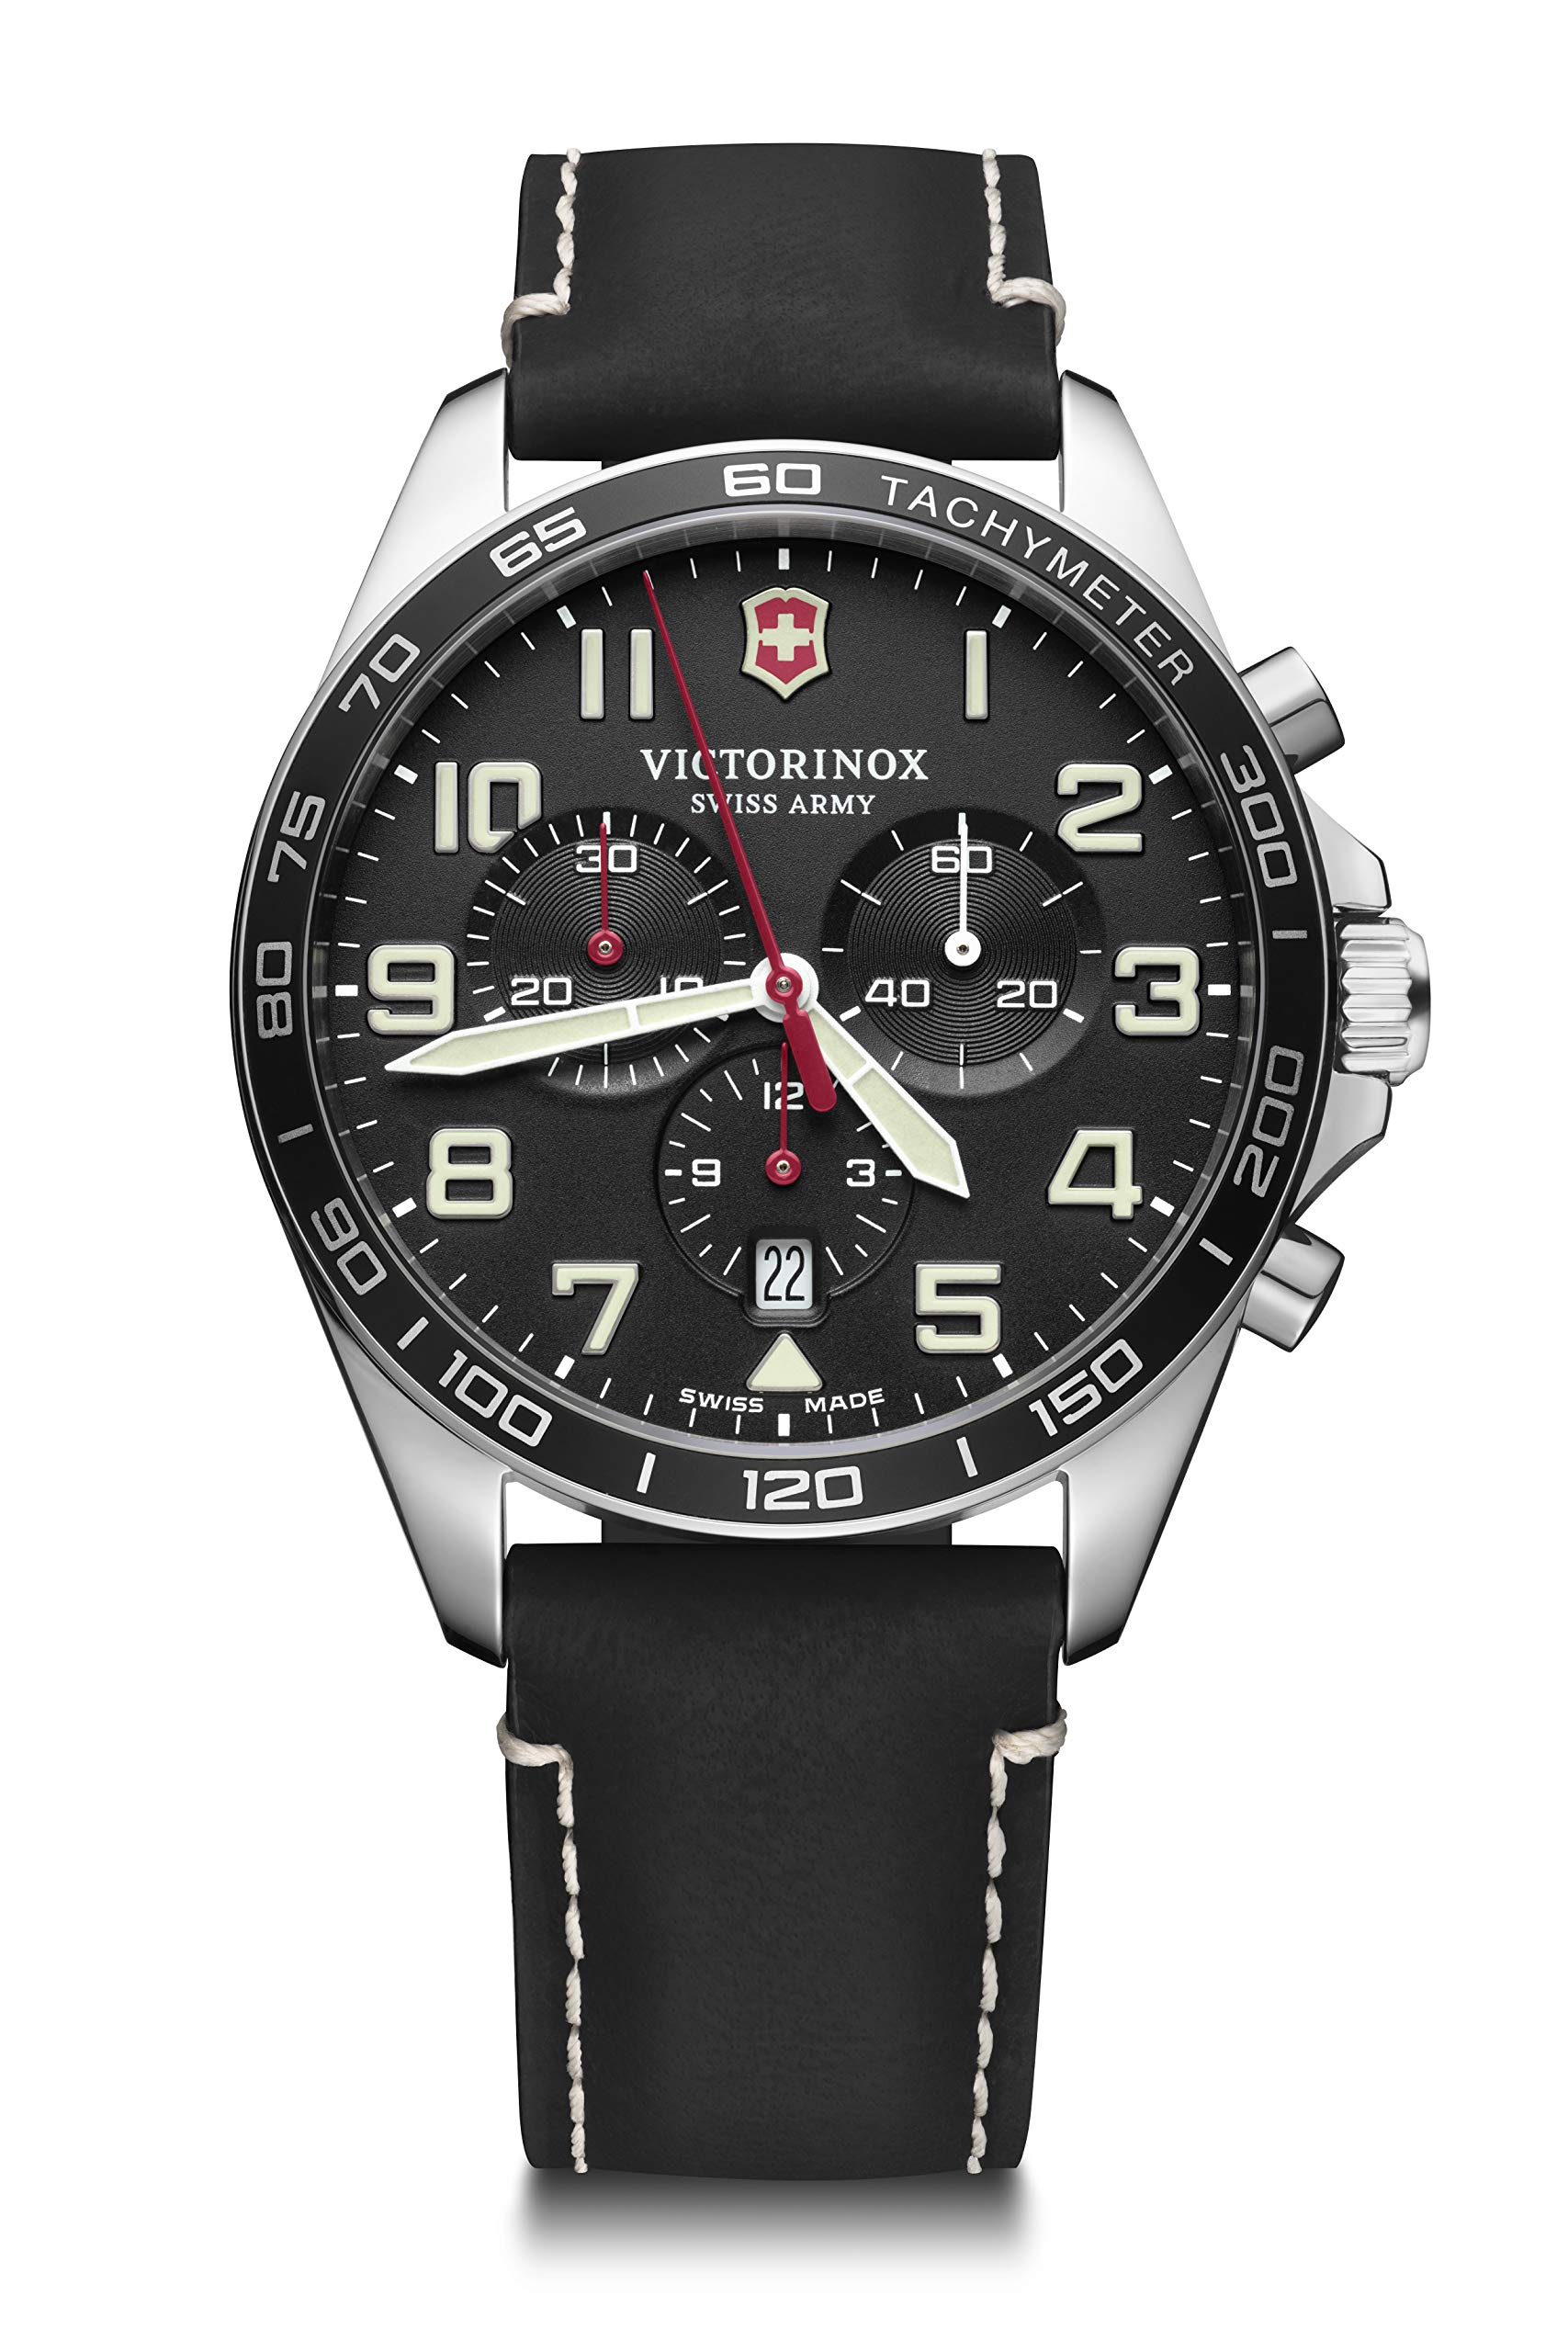 Victorinox Men's Field Force Chronograph – Swiss Made Analogue Quartz Stainless Steel Watch 241852